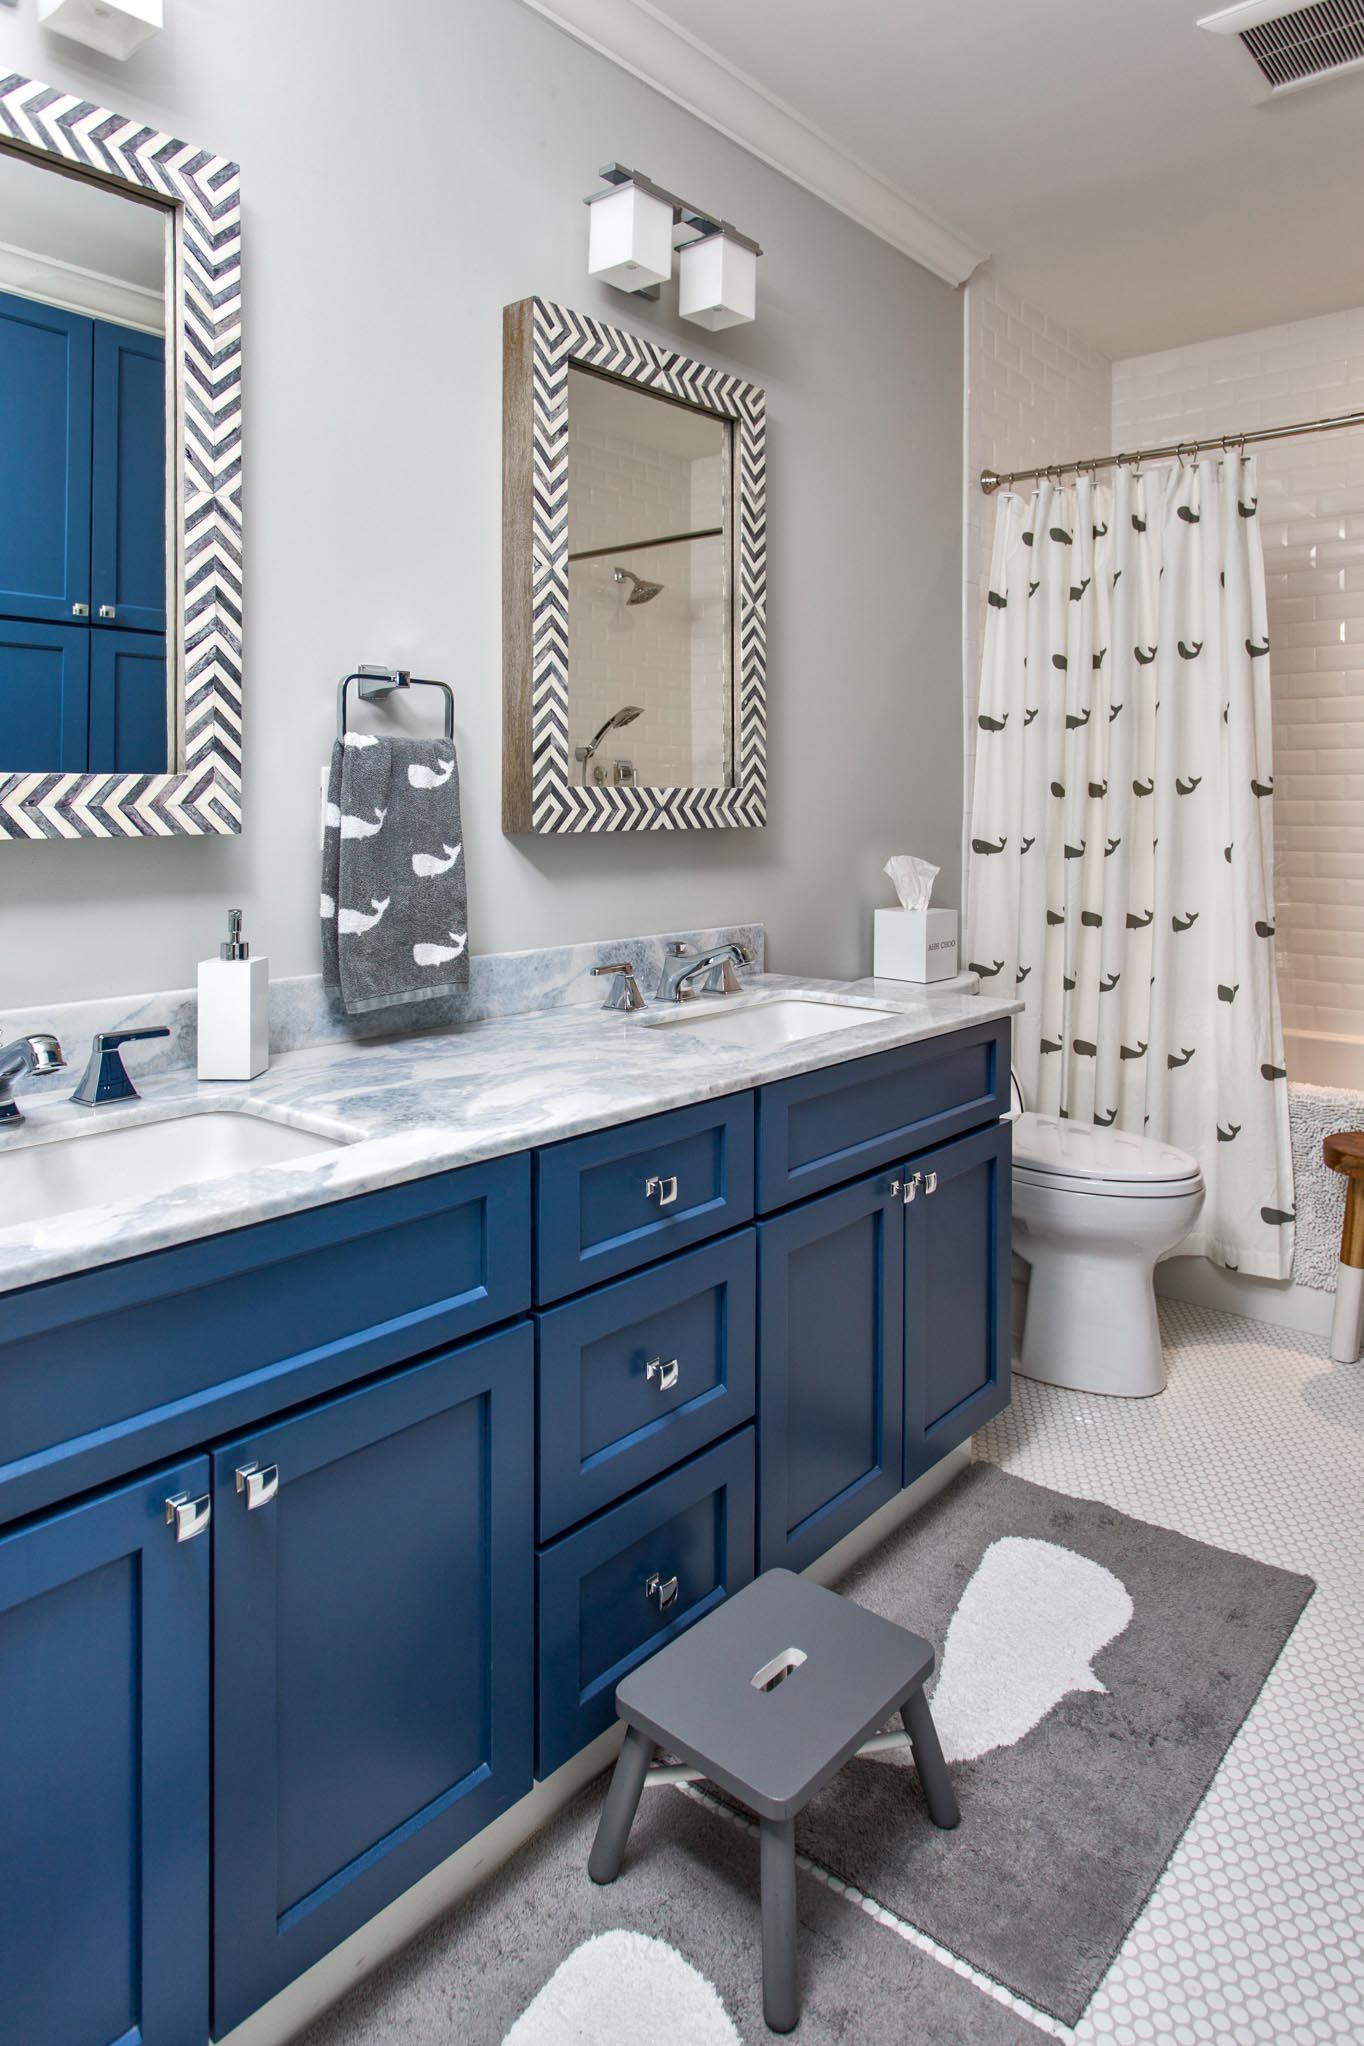 Whale Bathroom Decor Awesome Coastal Bathroom with Gray White and Navy Cabinets Whales